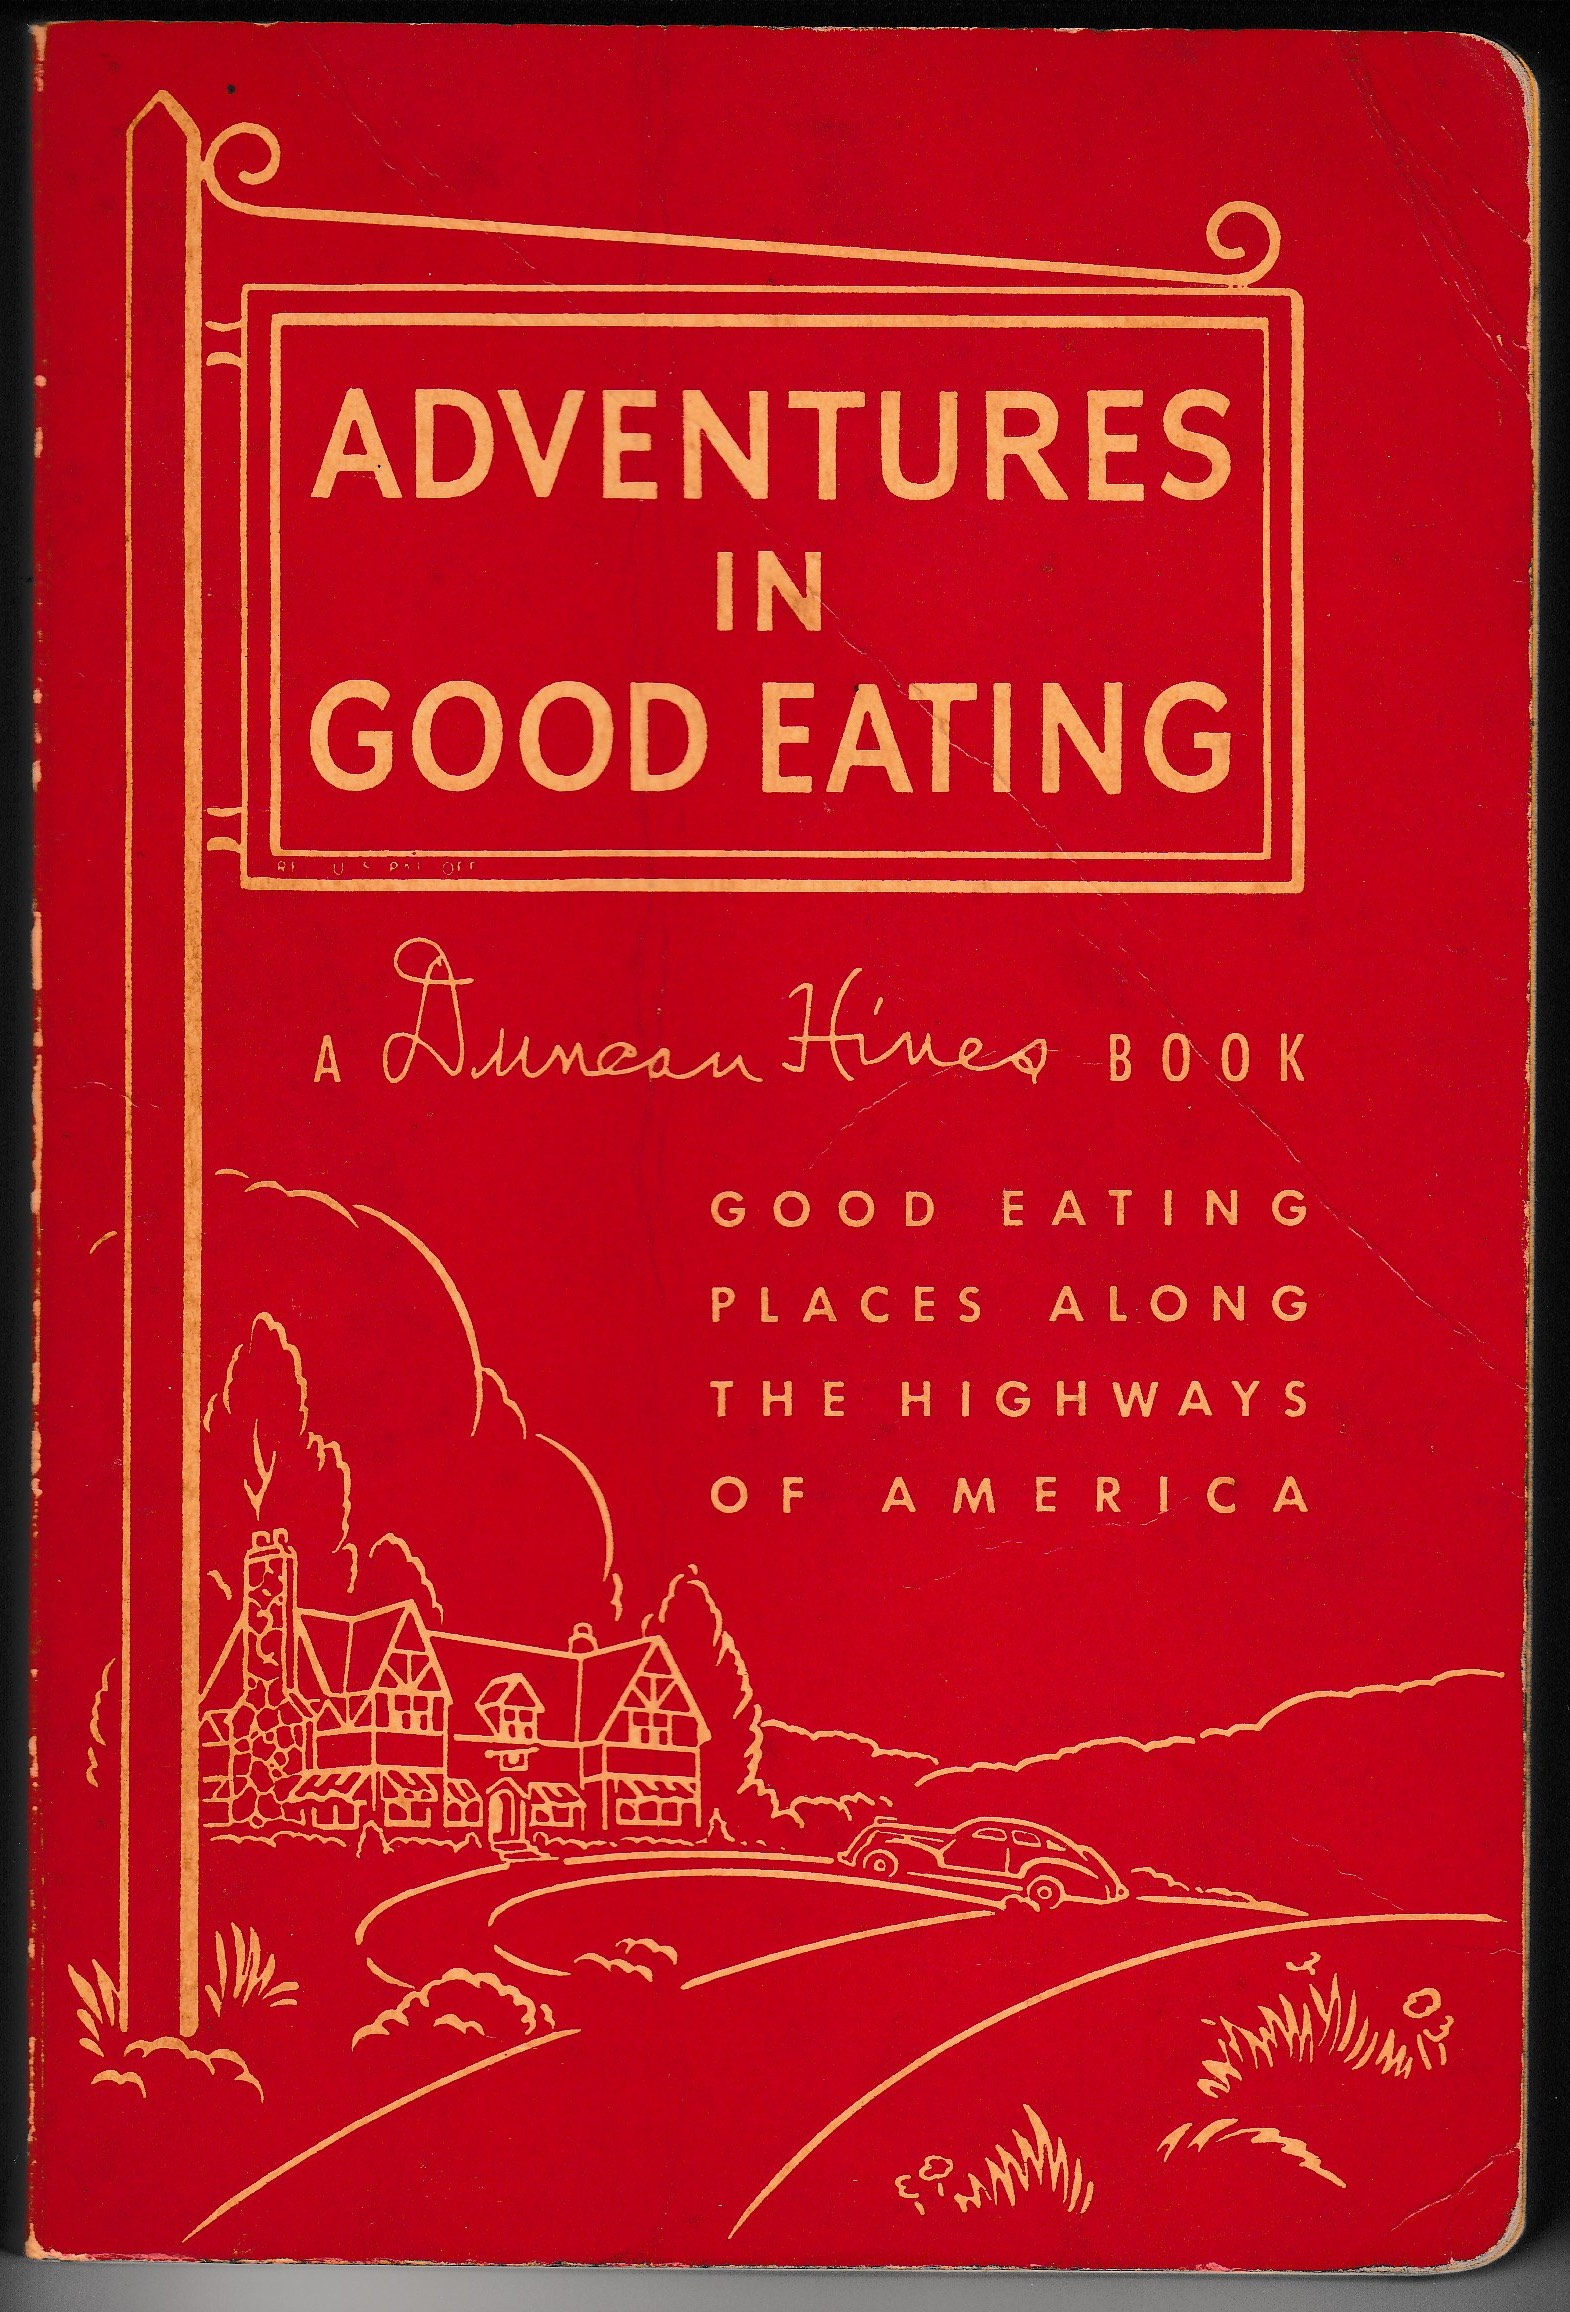 Adventures in Good Eating by Duncan Hines